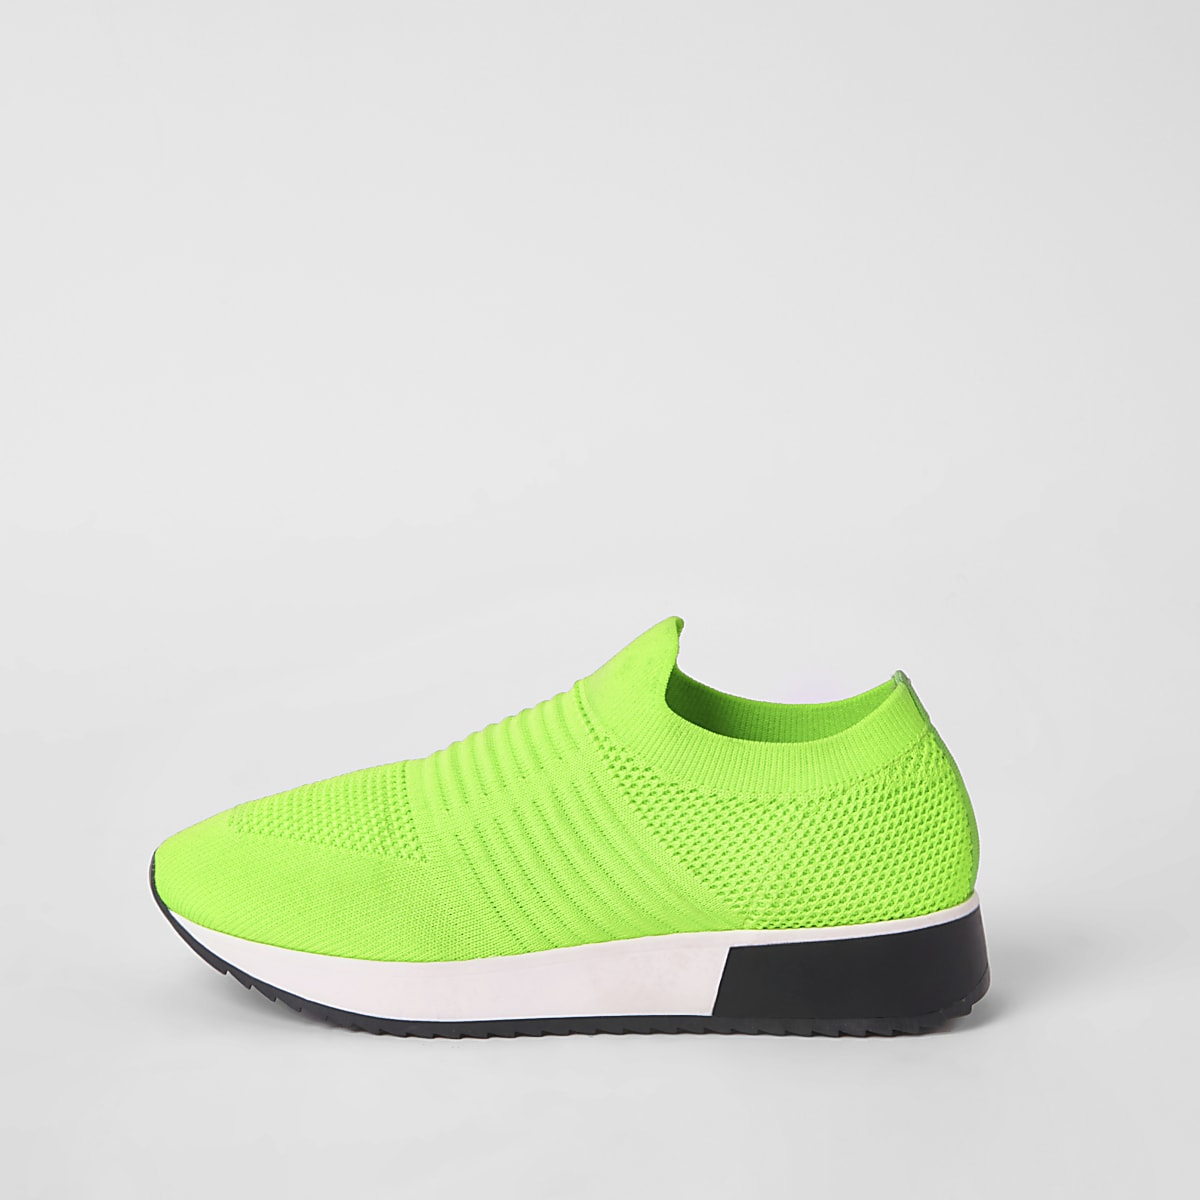 Bright green knitted runner sneakers